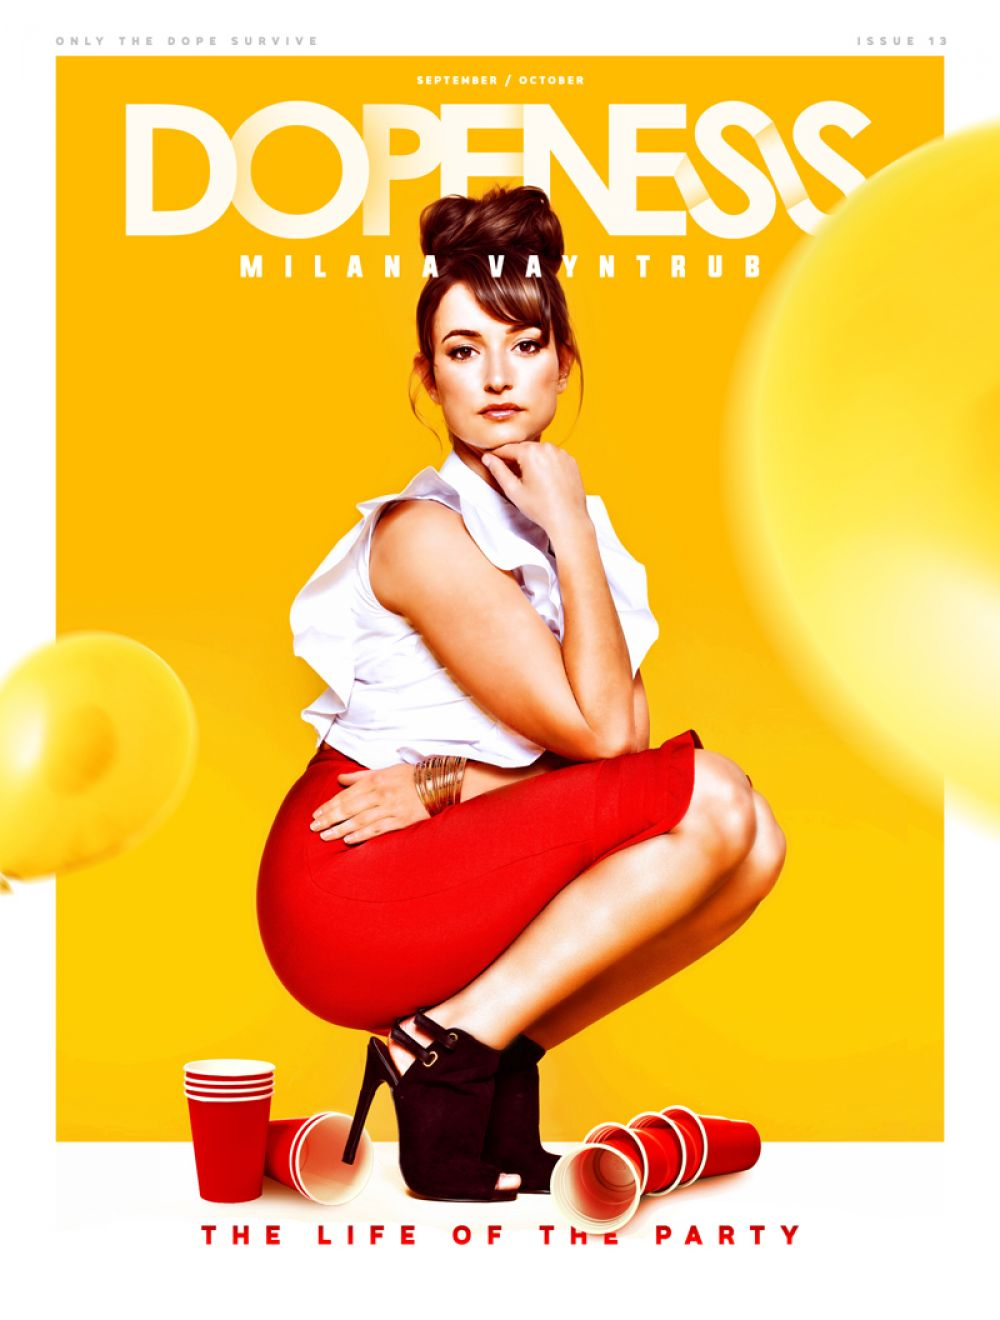 MILANA VAYNTRUB in Dopeness Magazine, September/October 2016 Issue